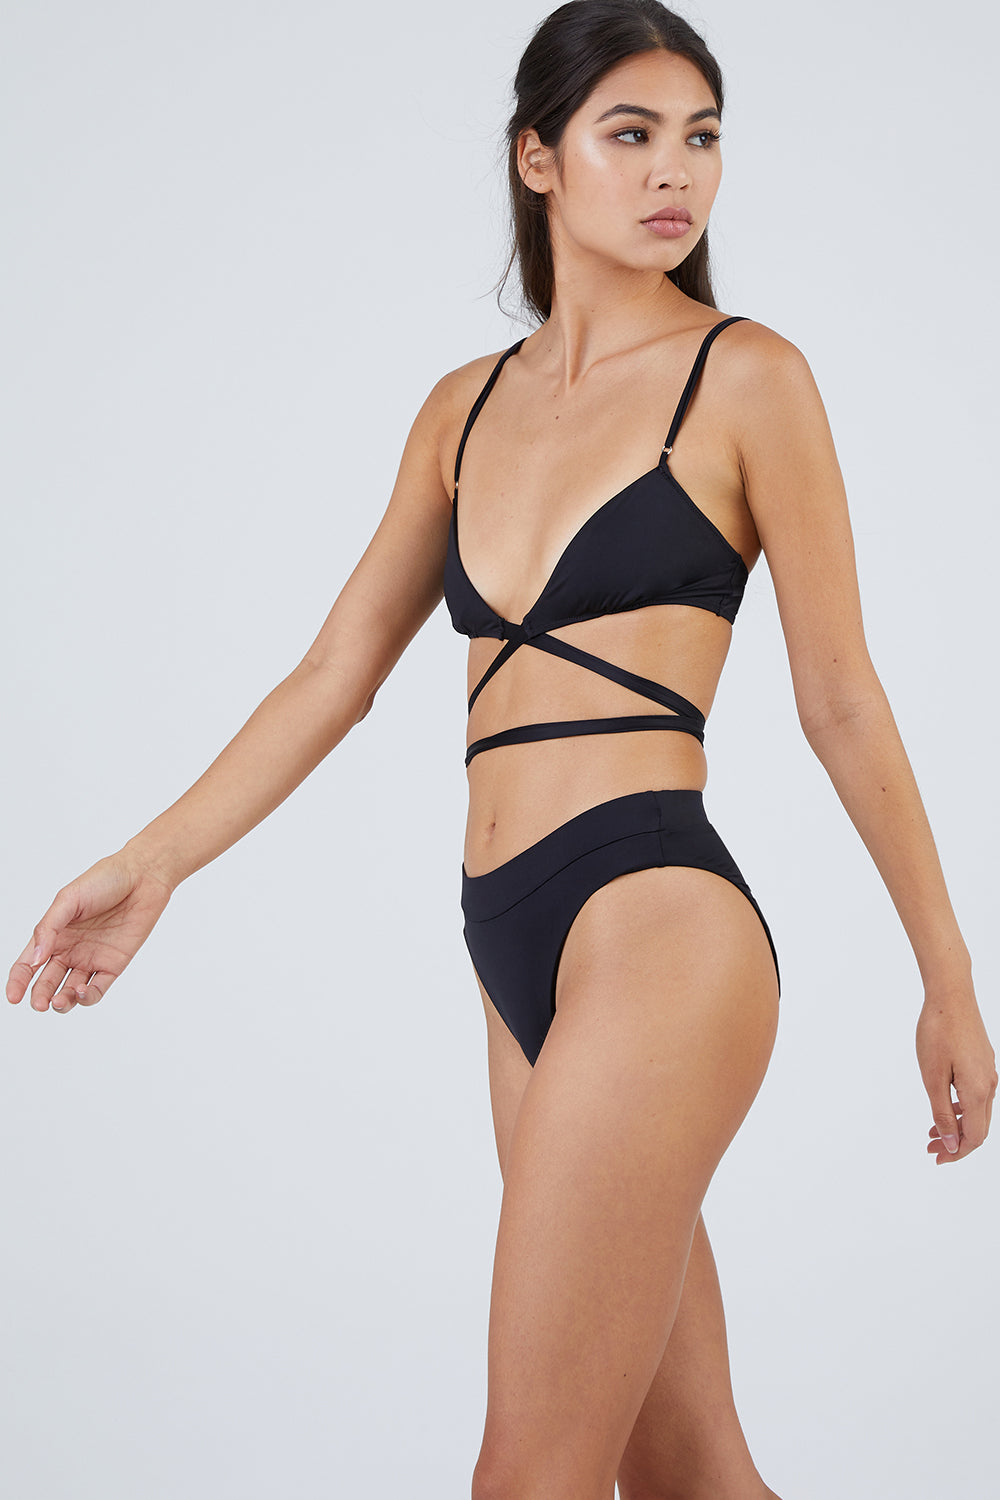 That 90's Vibe Wrap Bikini Top - Black